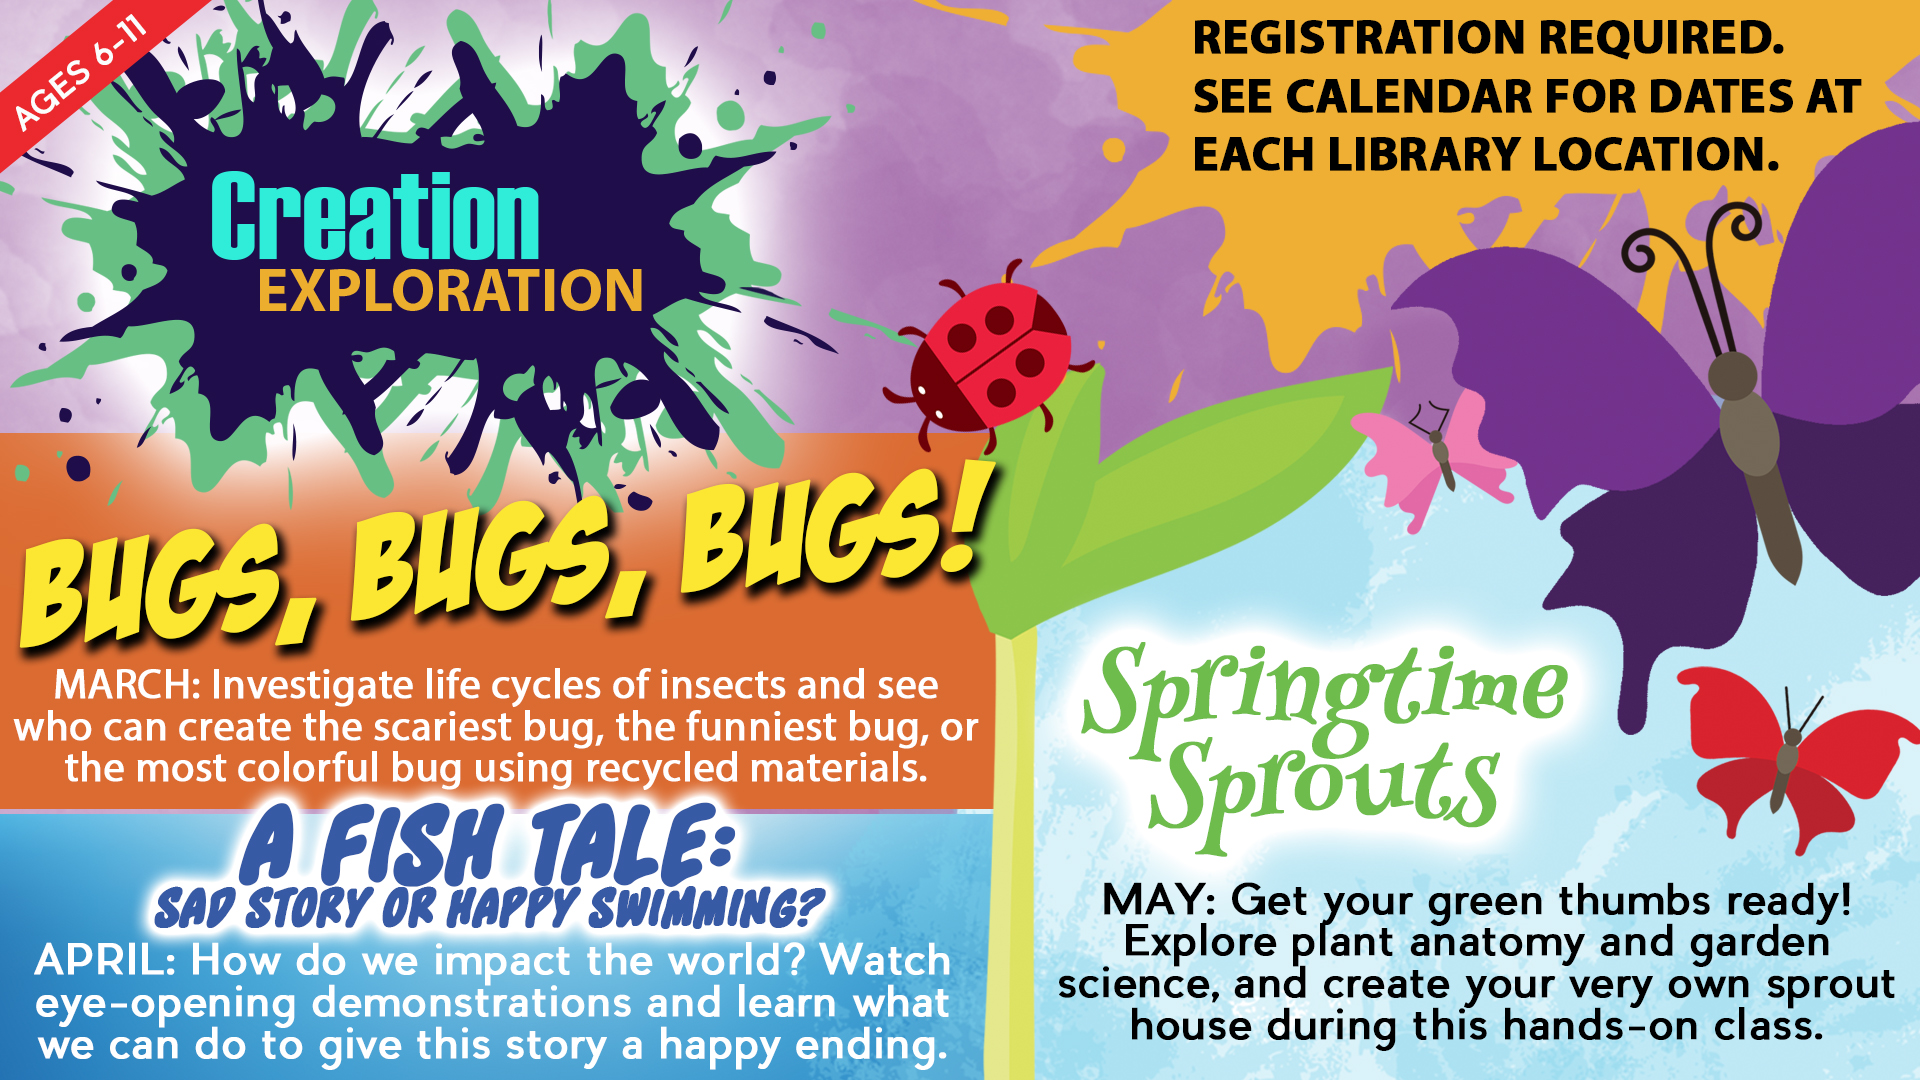 Creation Exploration: Bugs, Bugs, Bugs